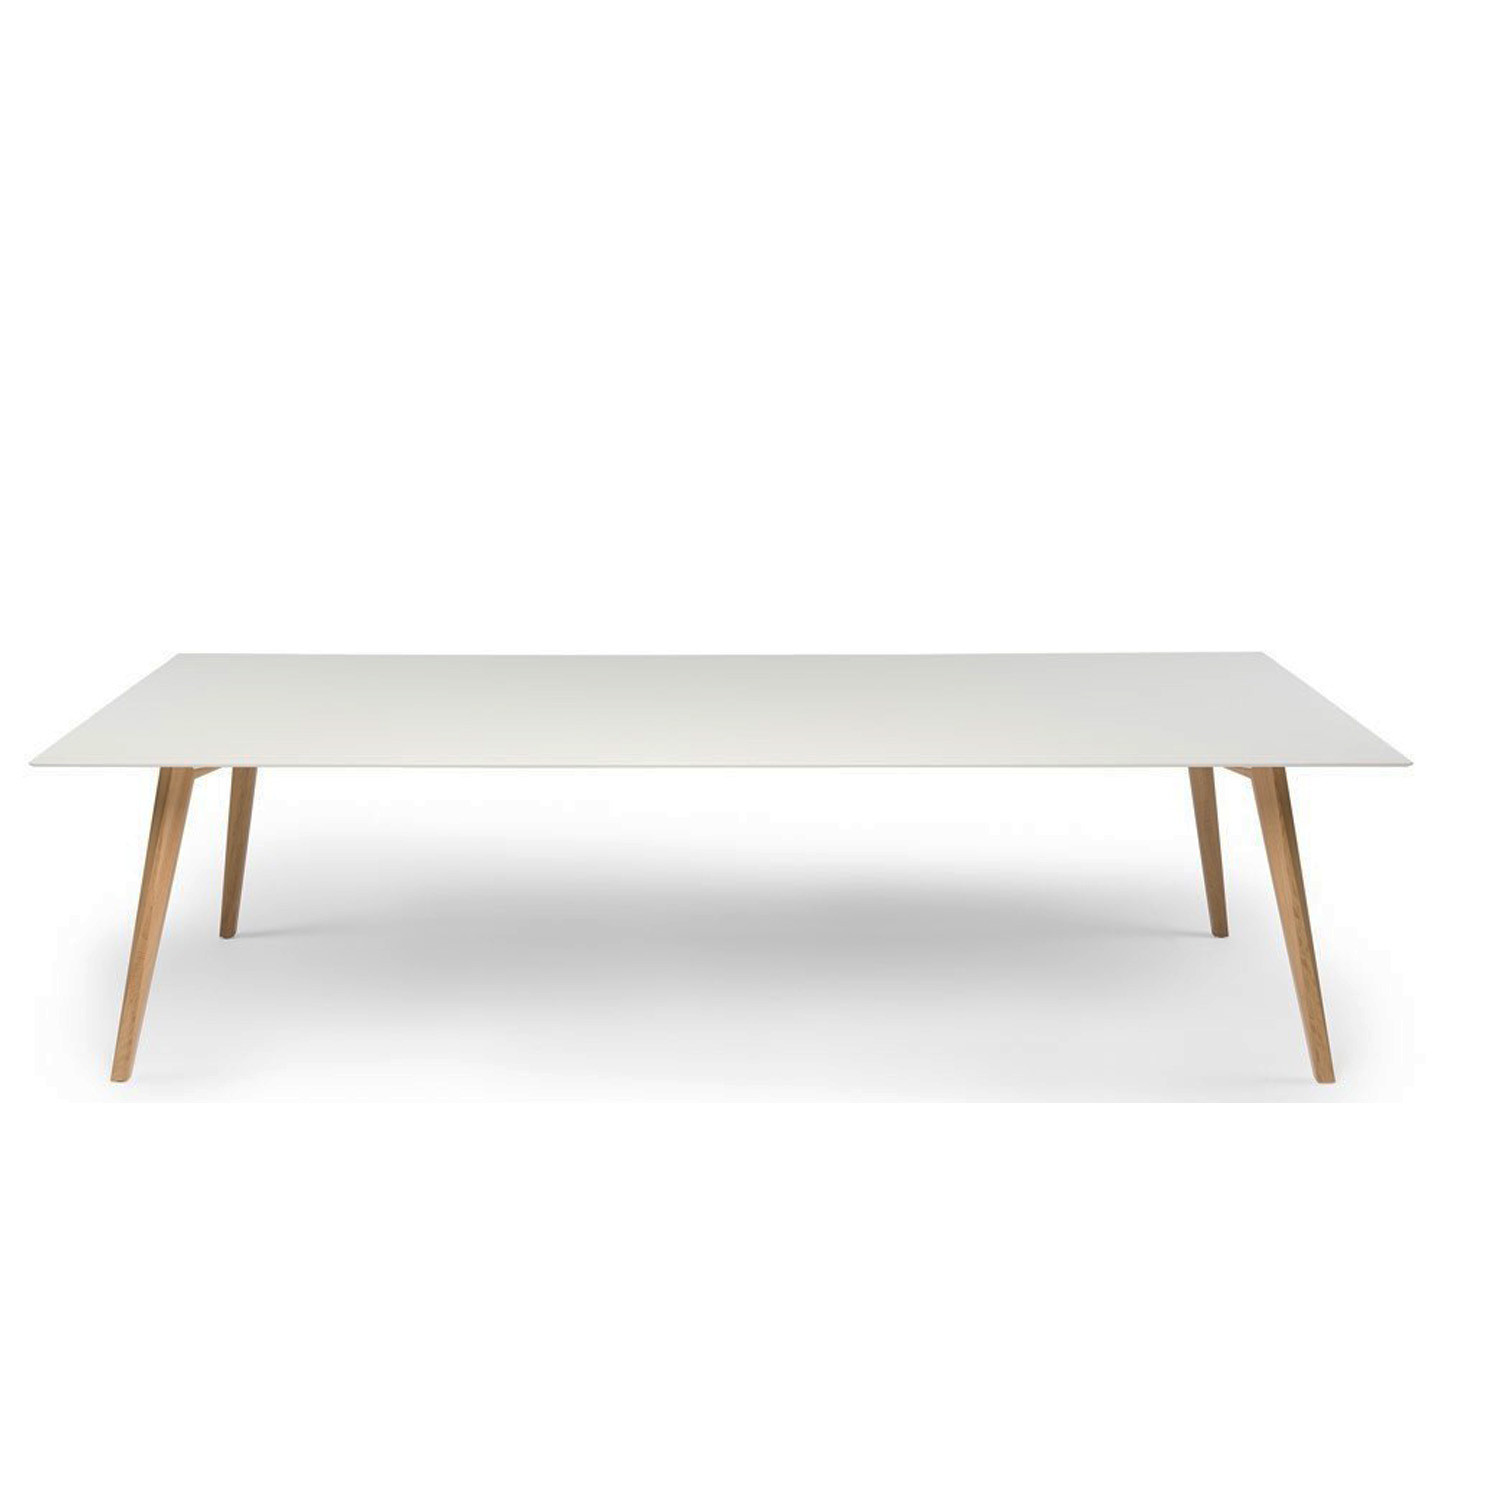 Bevel Rectangular Office Table